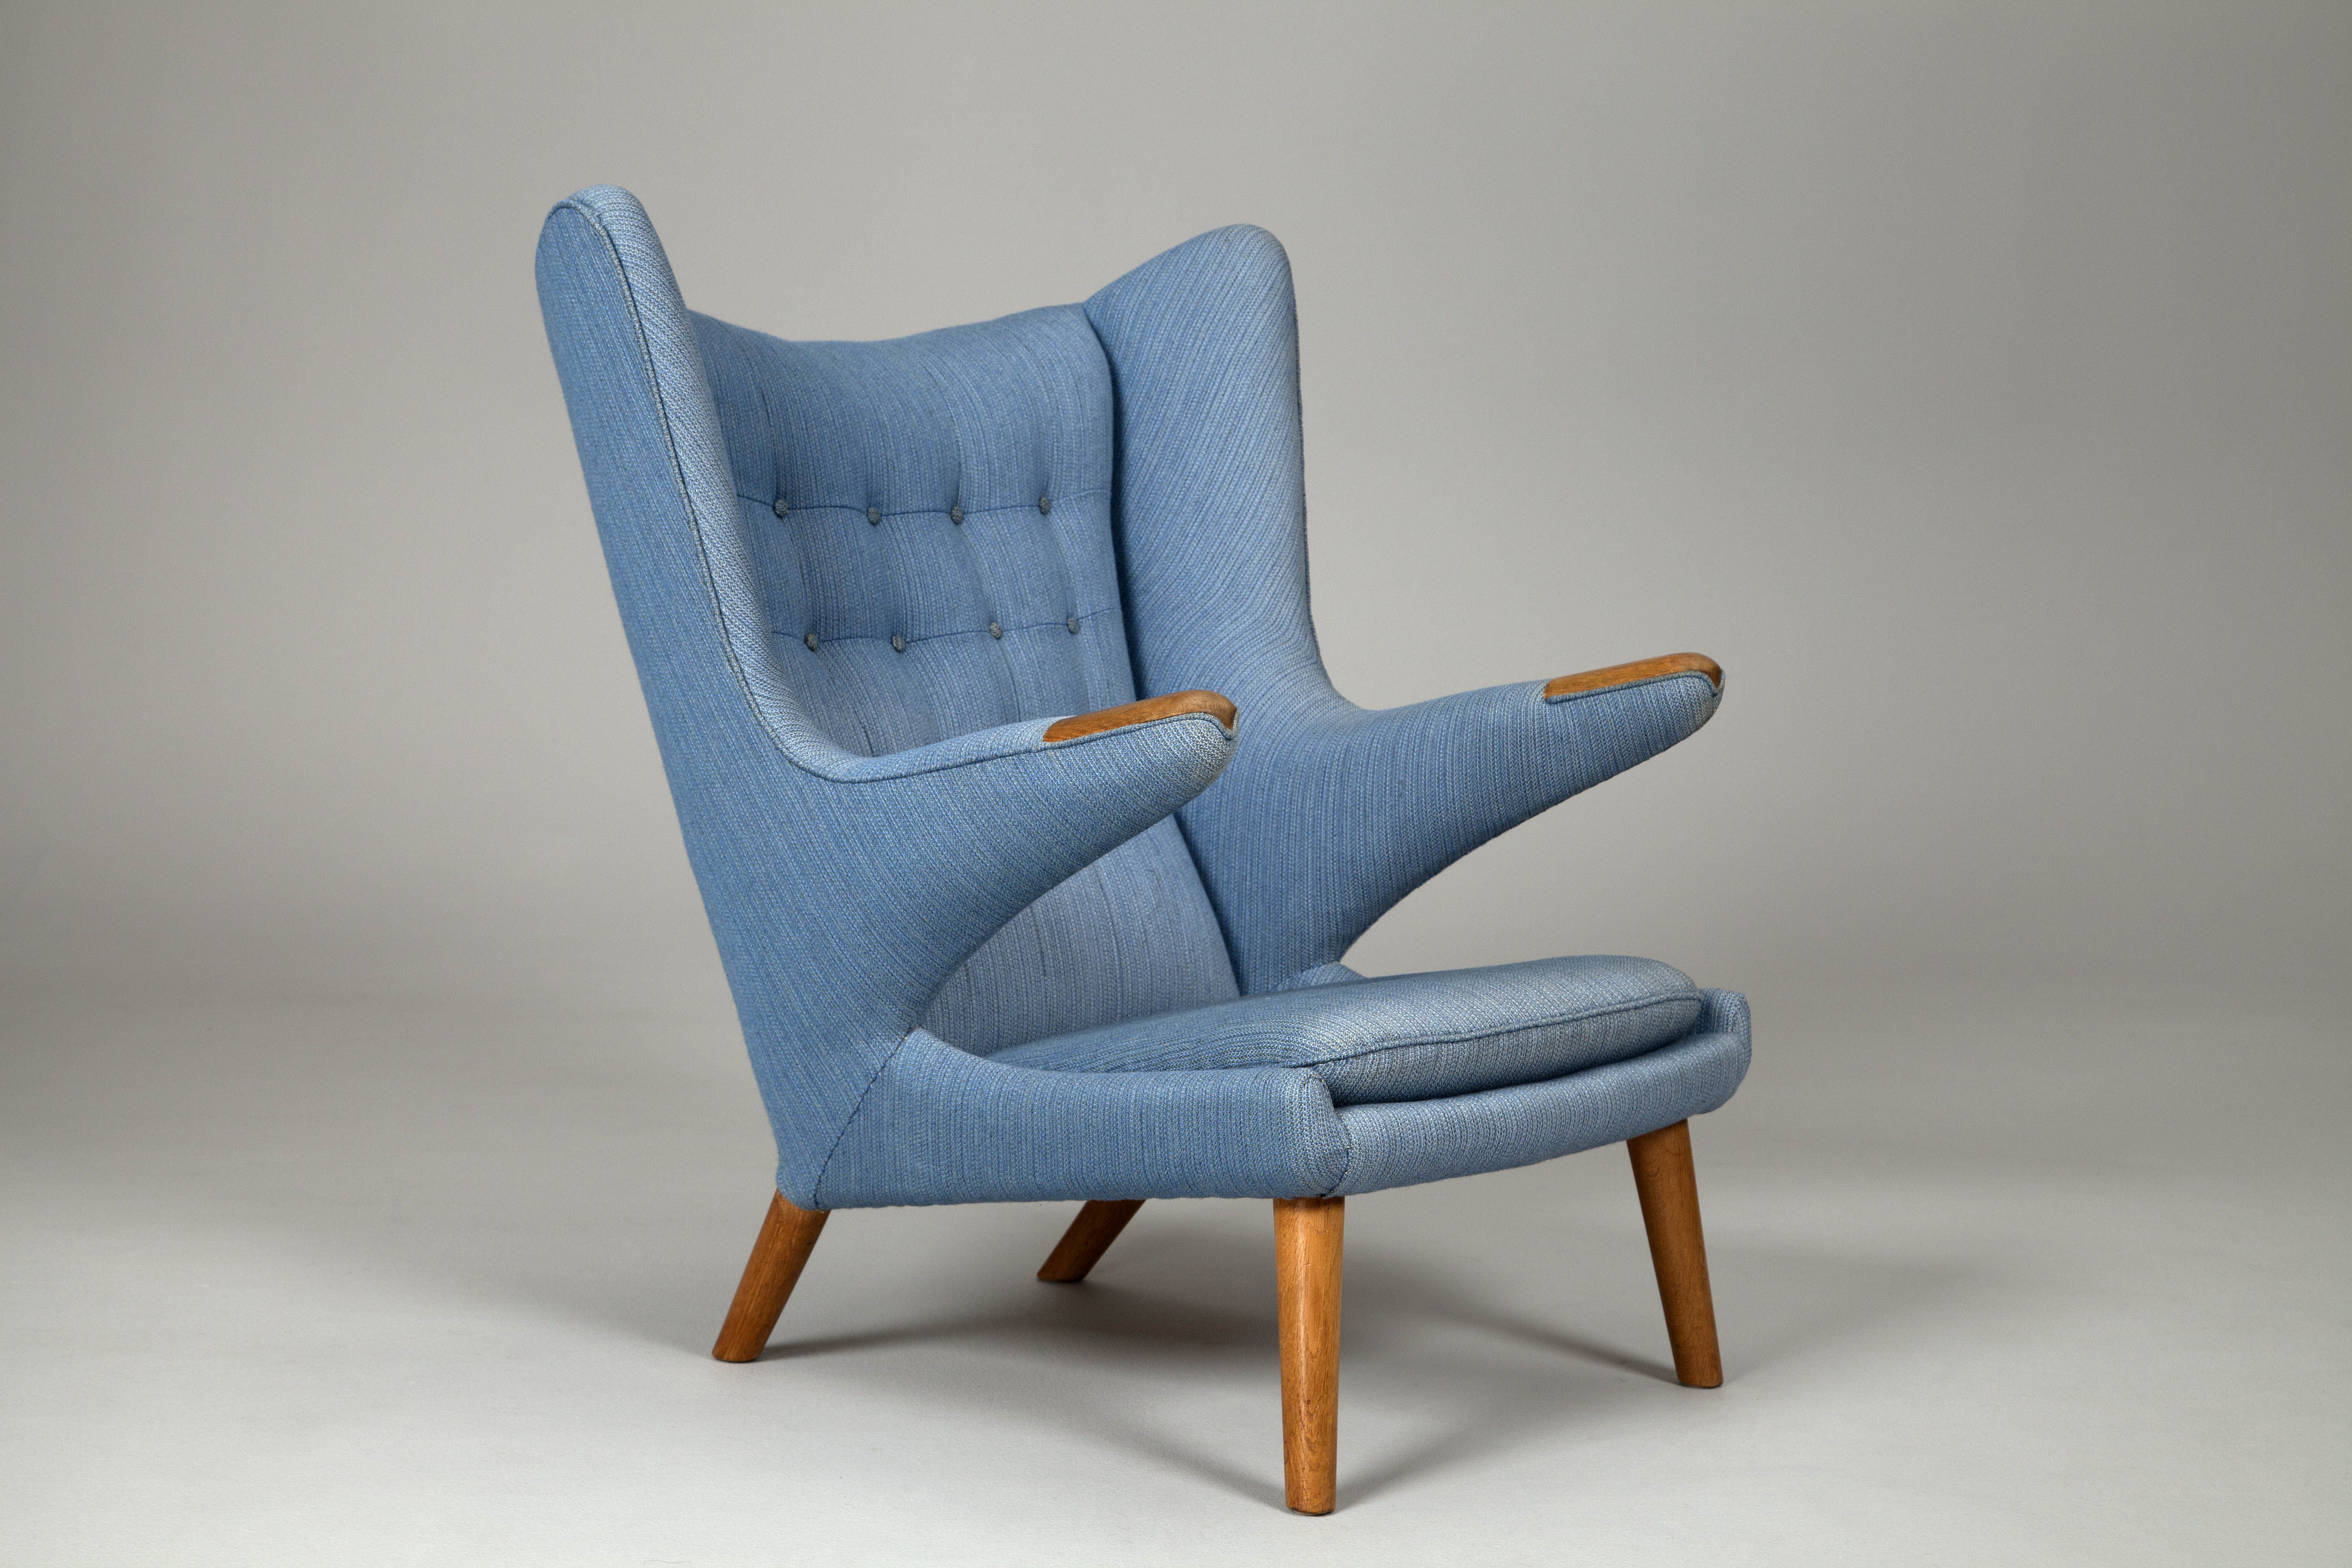 penccil 18 classic chairs